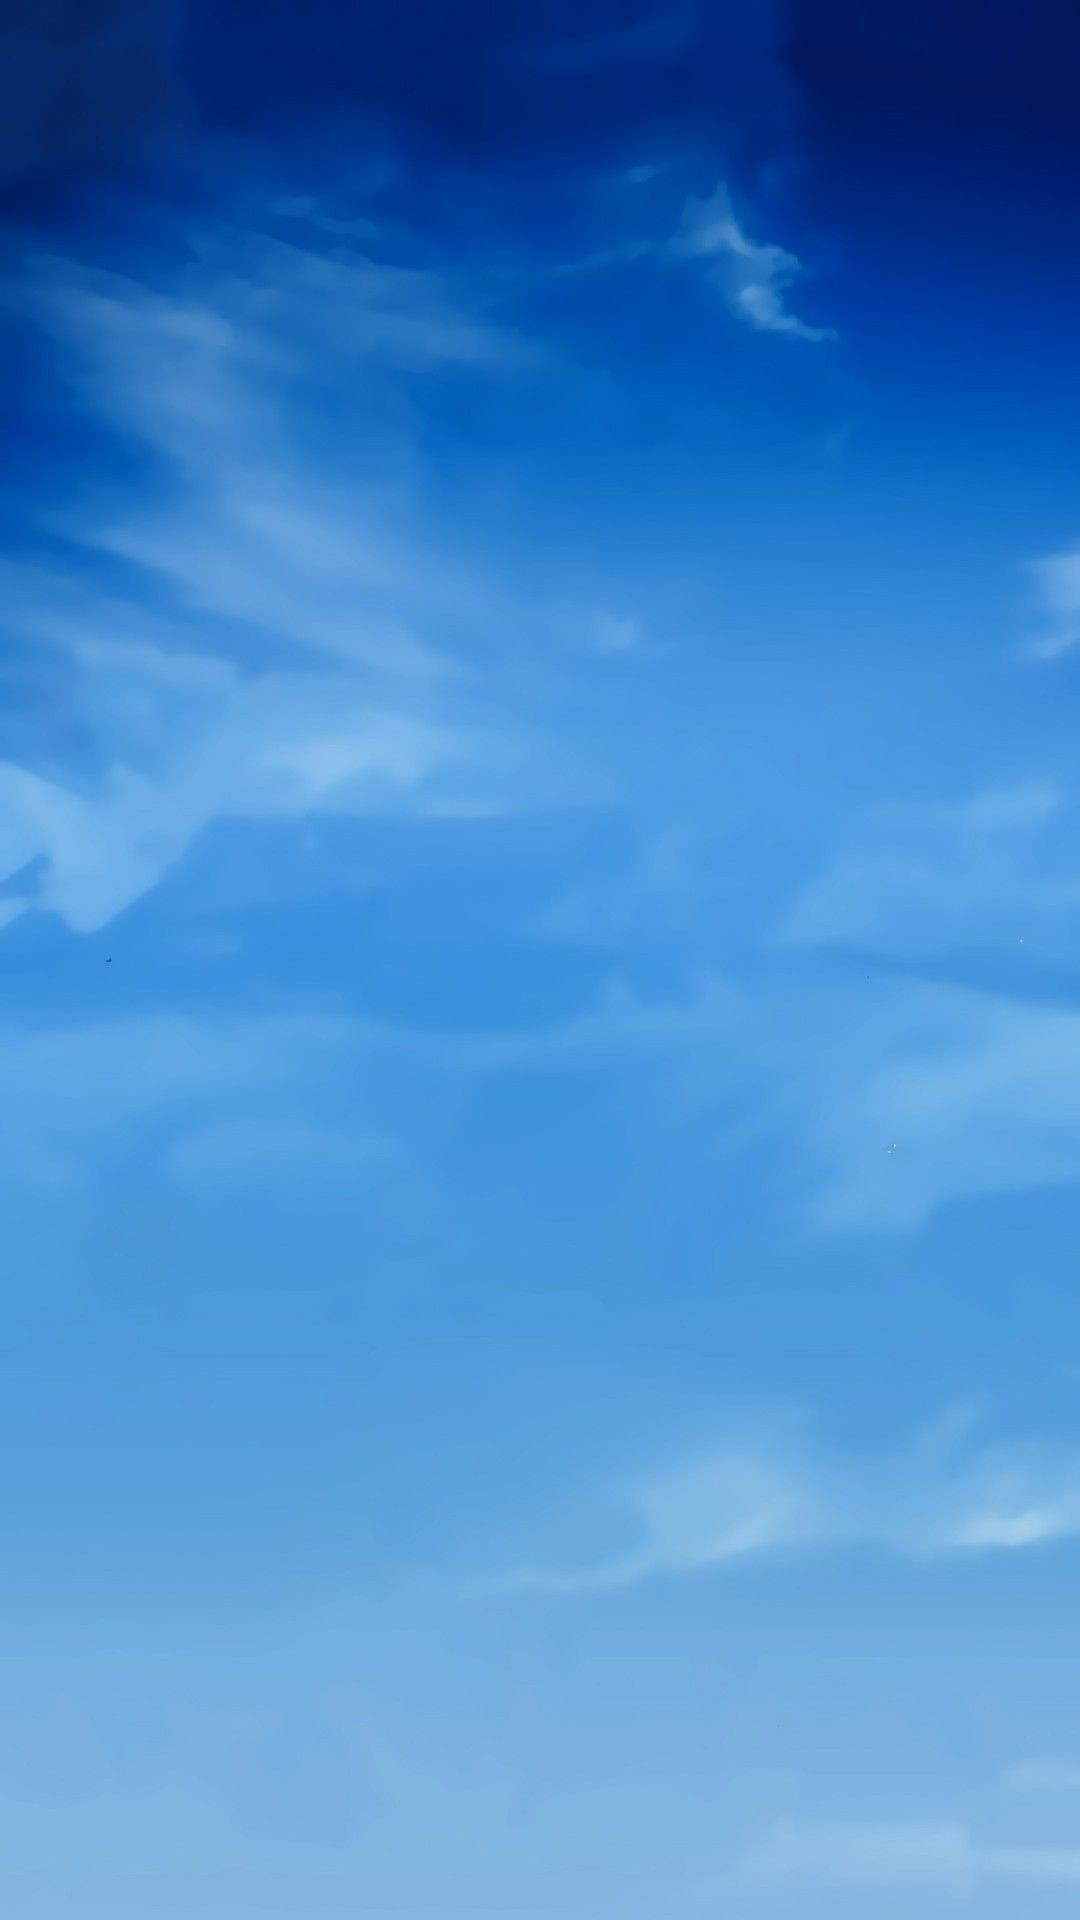 Blue Sky Iphone Wallpaper 88 Images